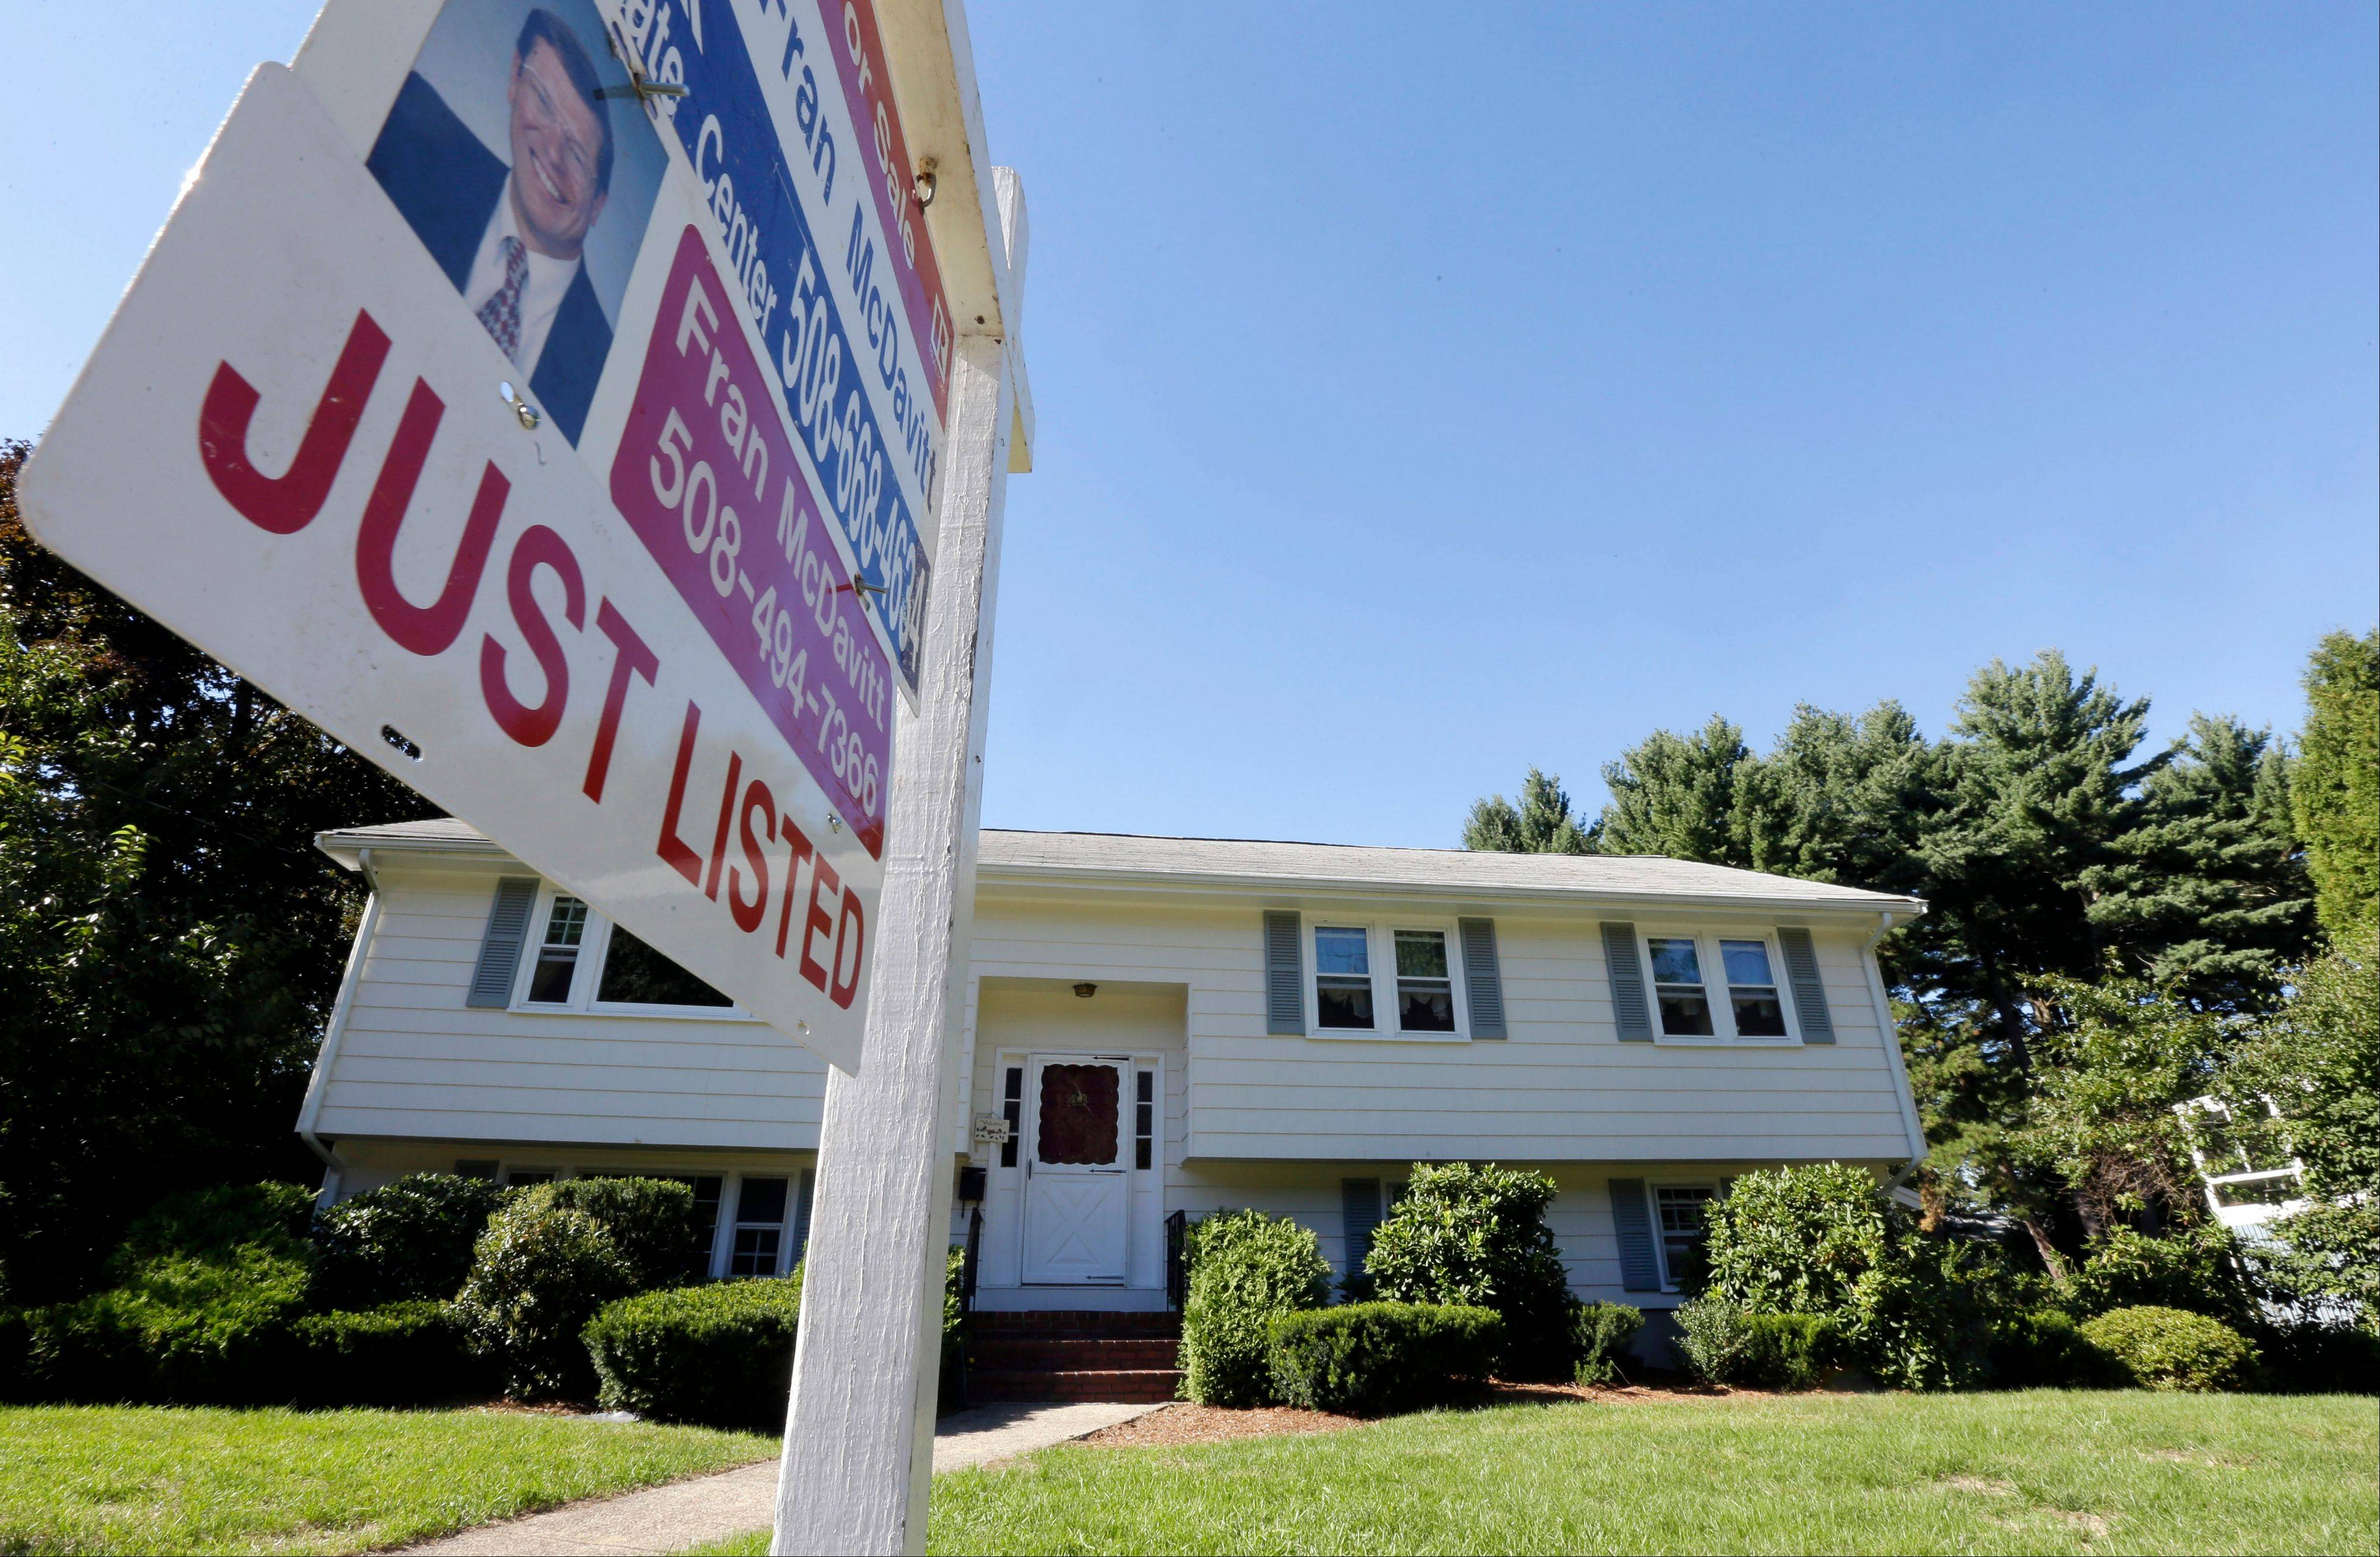 Americans bought fewer existing homes in September than the previous month, held back by higher mortgage rates and rising prices, the National Association of Realtors said Monday.